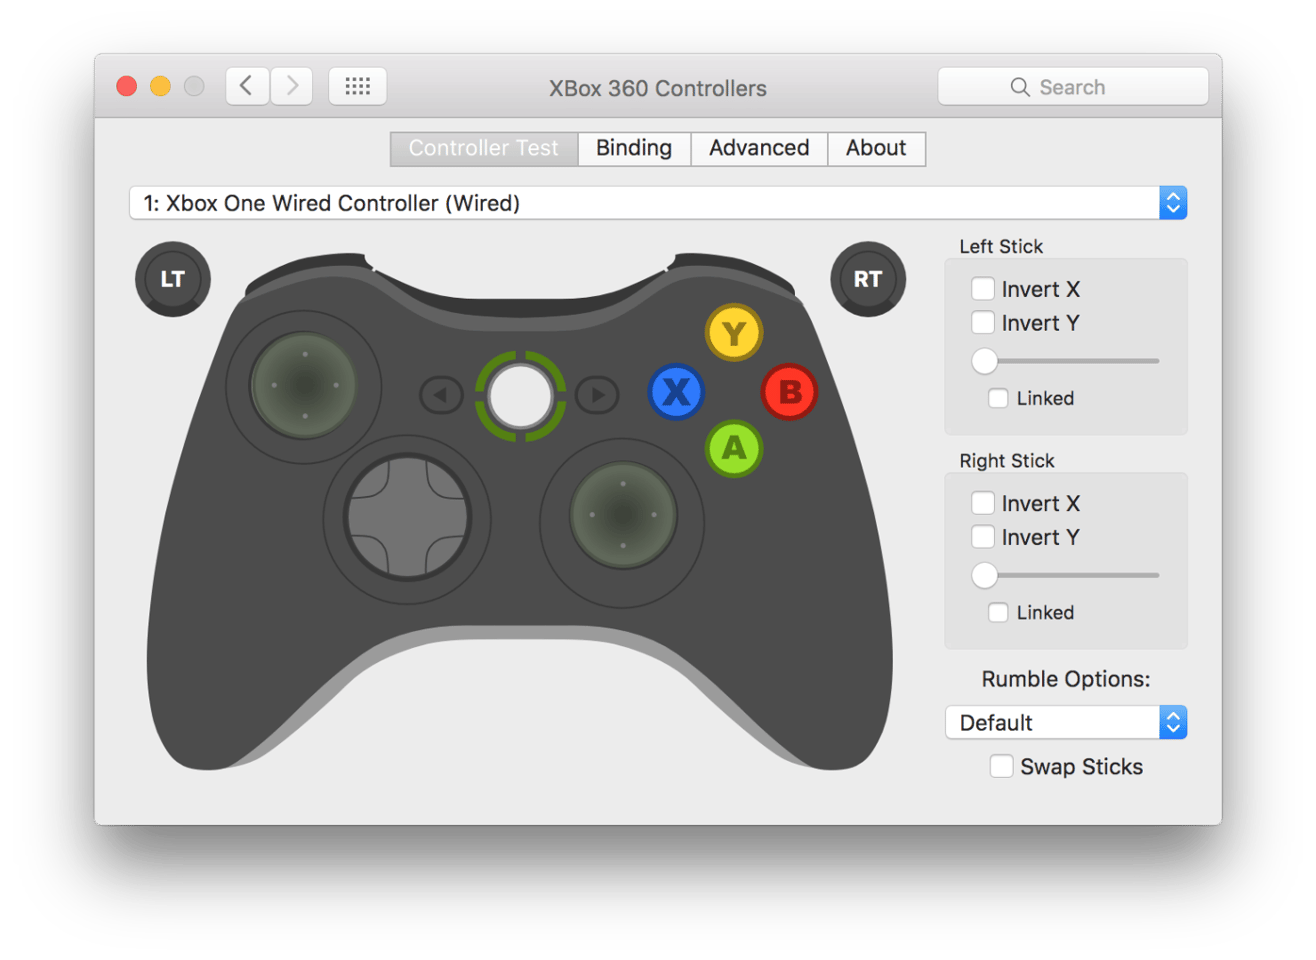 The 360Controller preferences